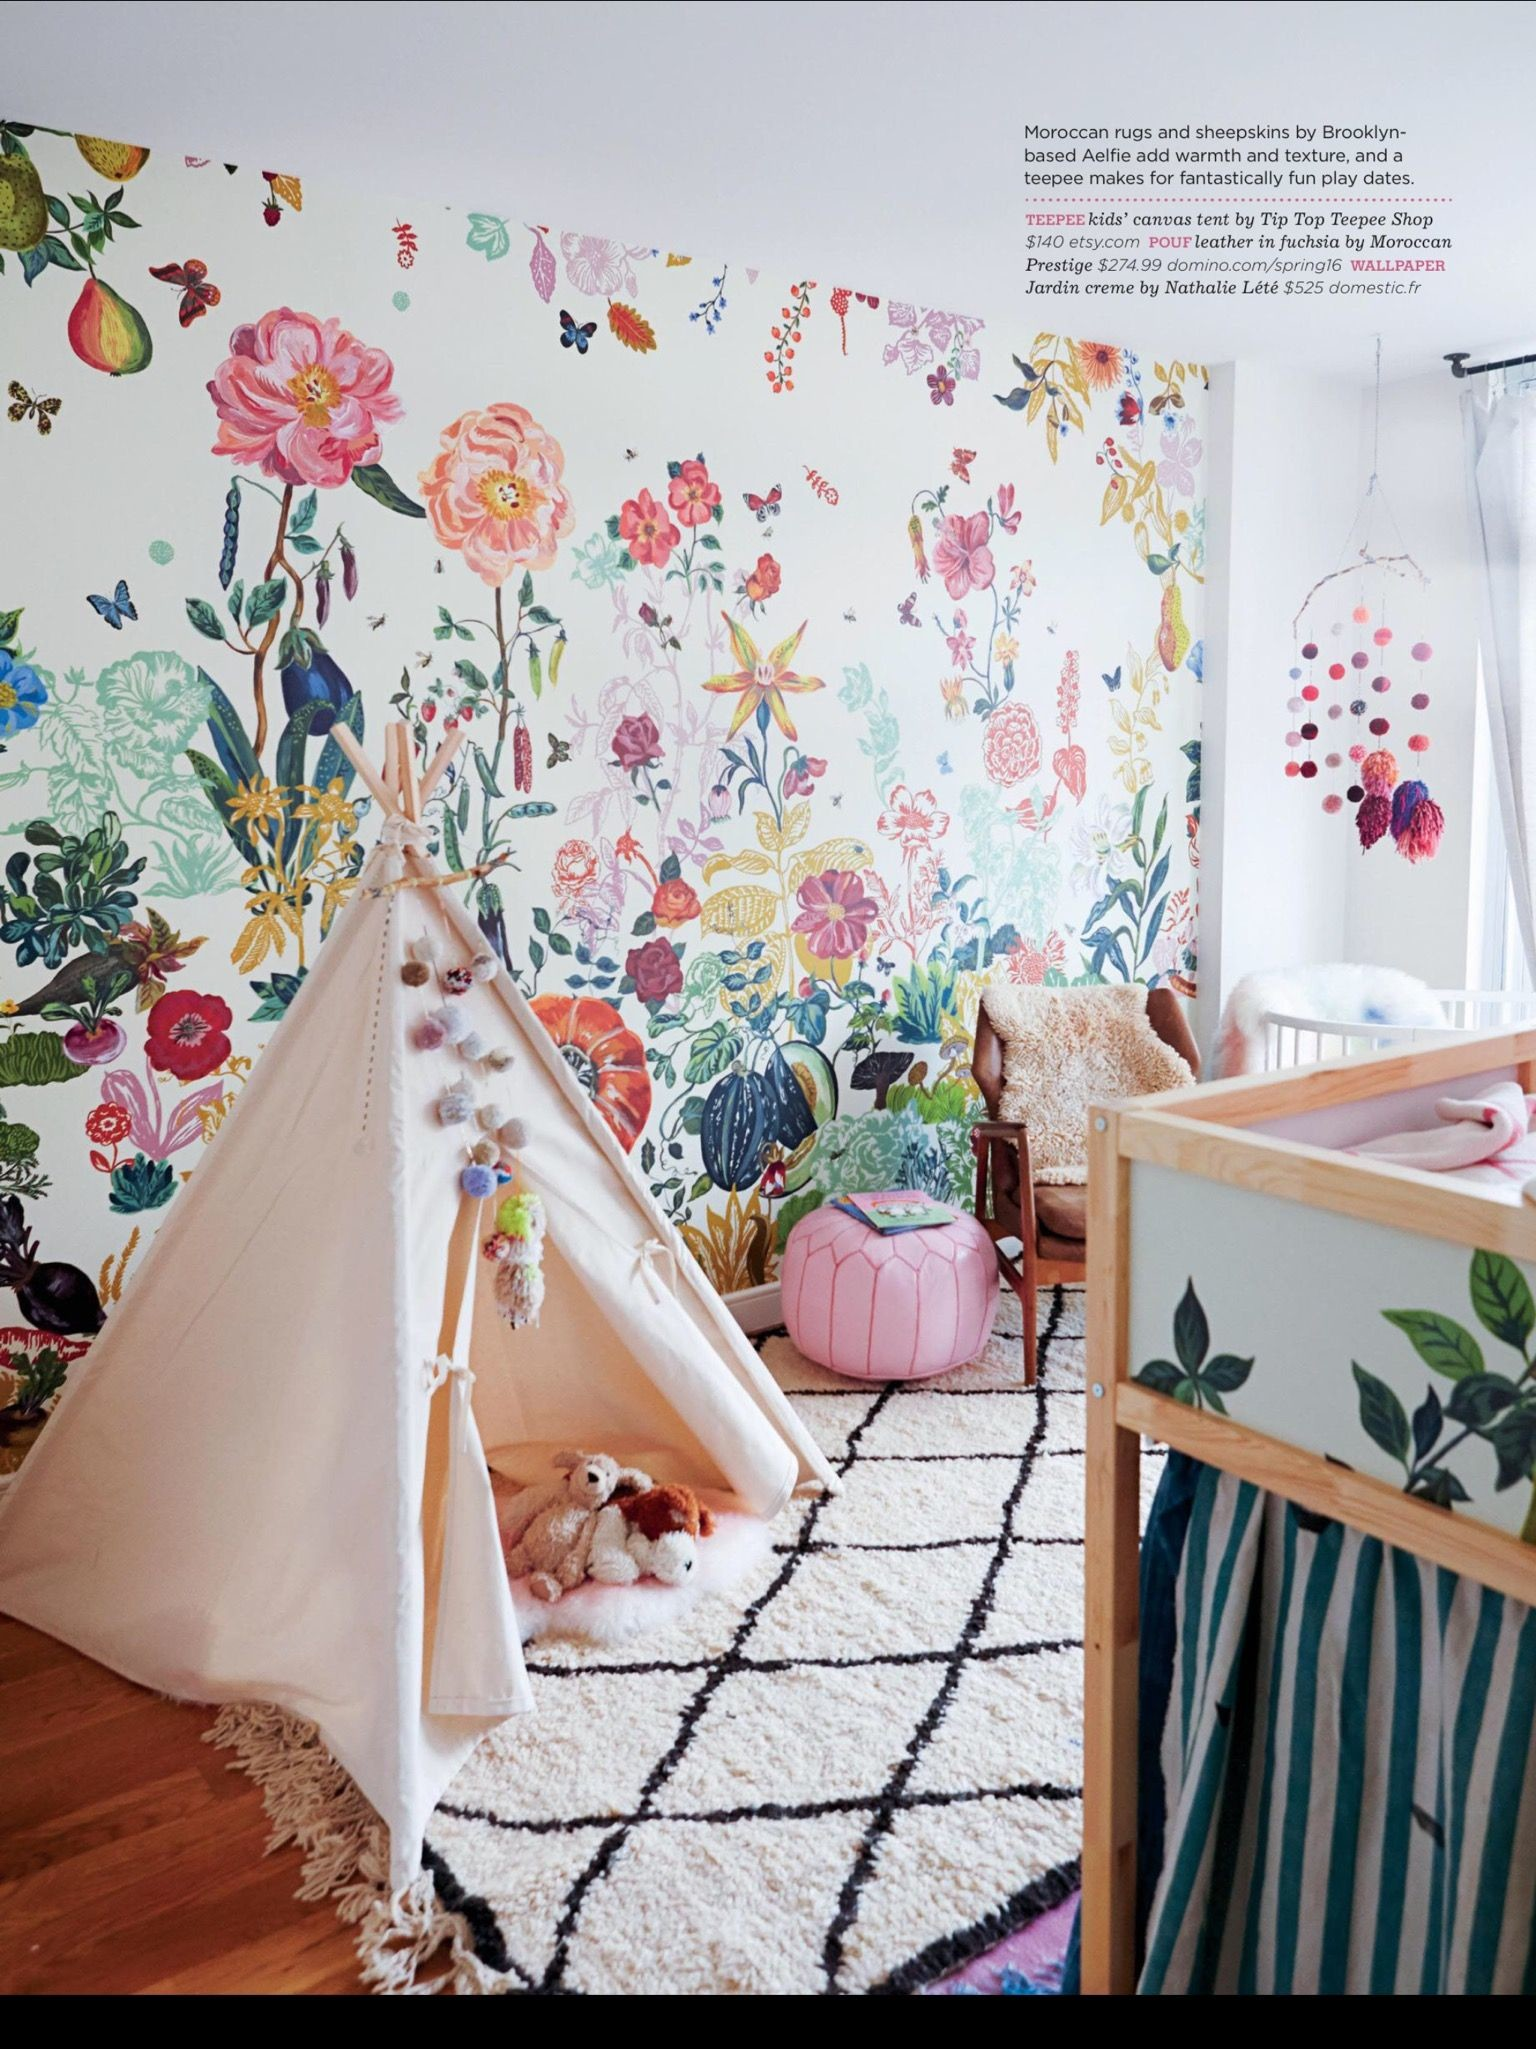 Res: 1536x2049, Stokke Sleepi mini crib in white spotting in this colorful eclectic nursery room featured in DOMINO MAGAZINE